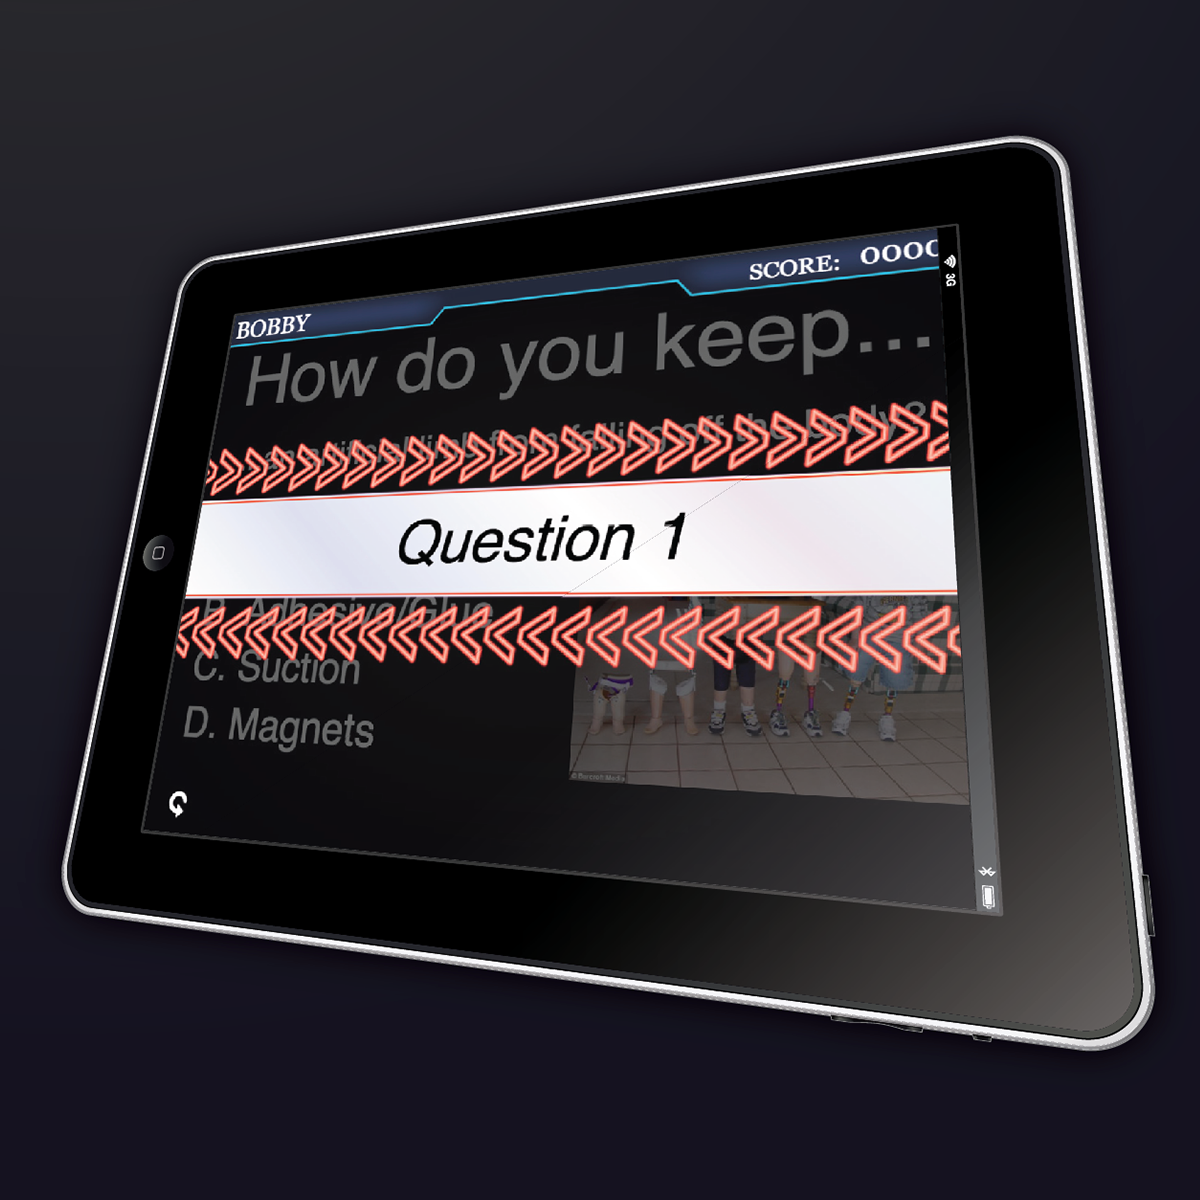 Image of a tablet displaying a question from the game